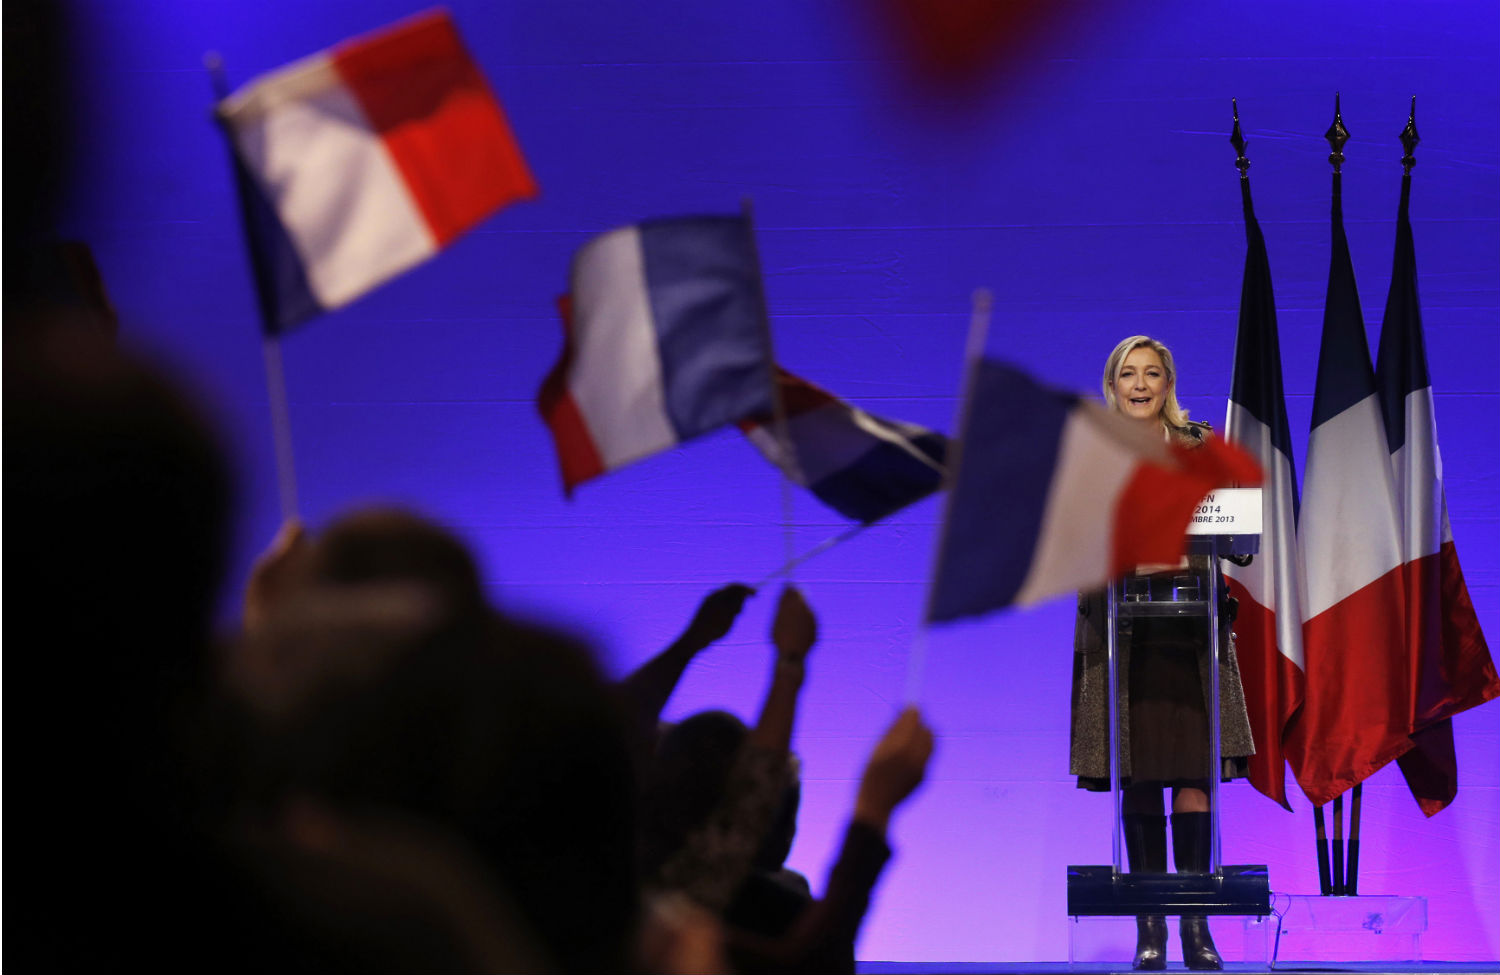 Has-Marine-Le-Pen-Already-Won-the-Battle-for-the-Soul-of-France